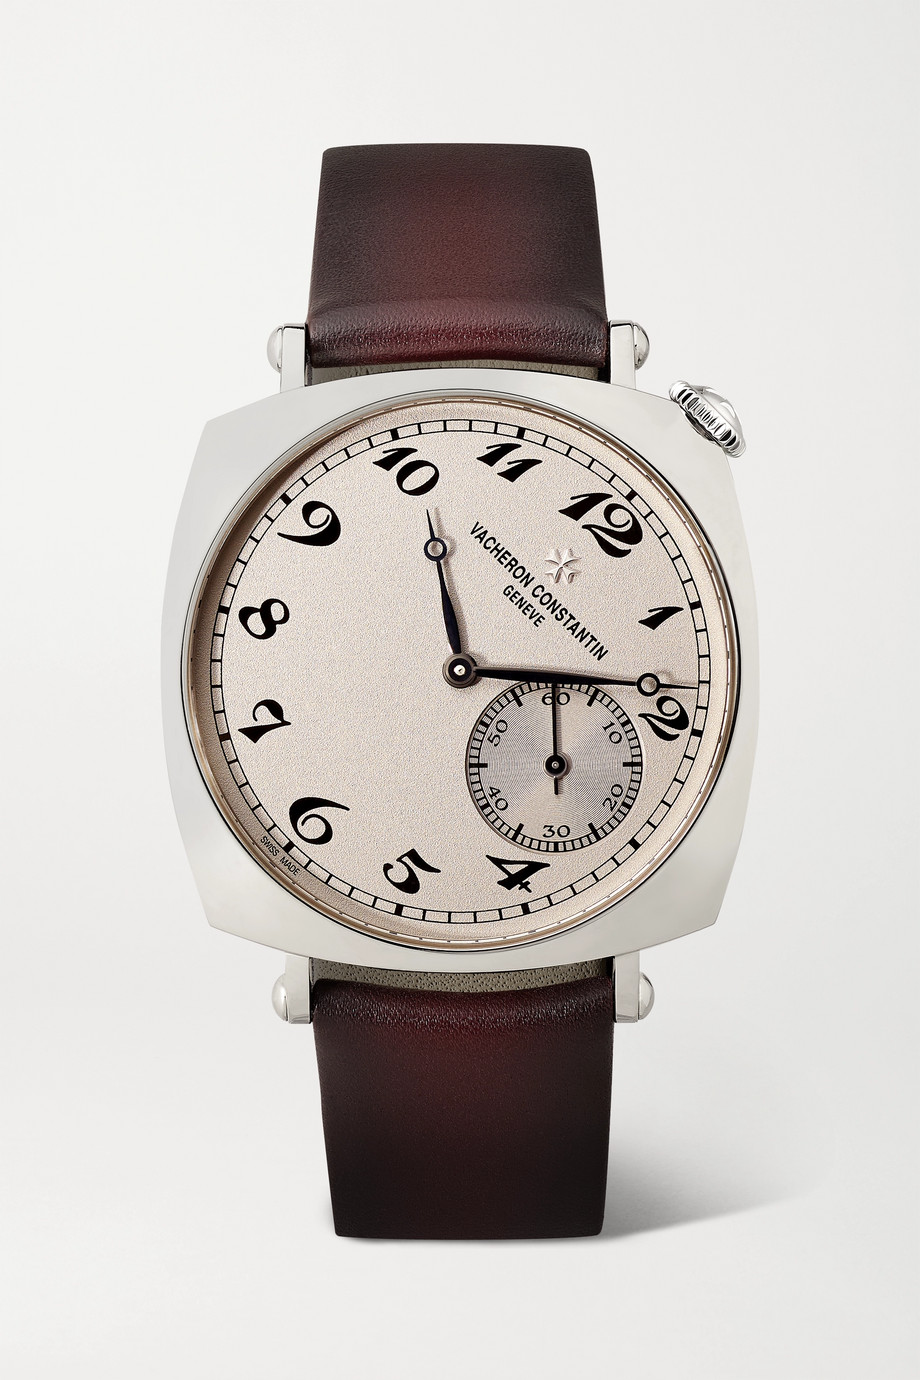 VACHERON CONSTANTIN Historiques American 1921 Hand-Wound 40mm 18-karat white gold and leather watch